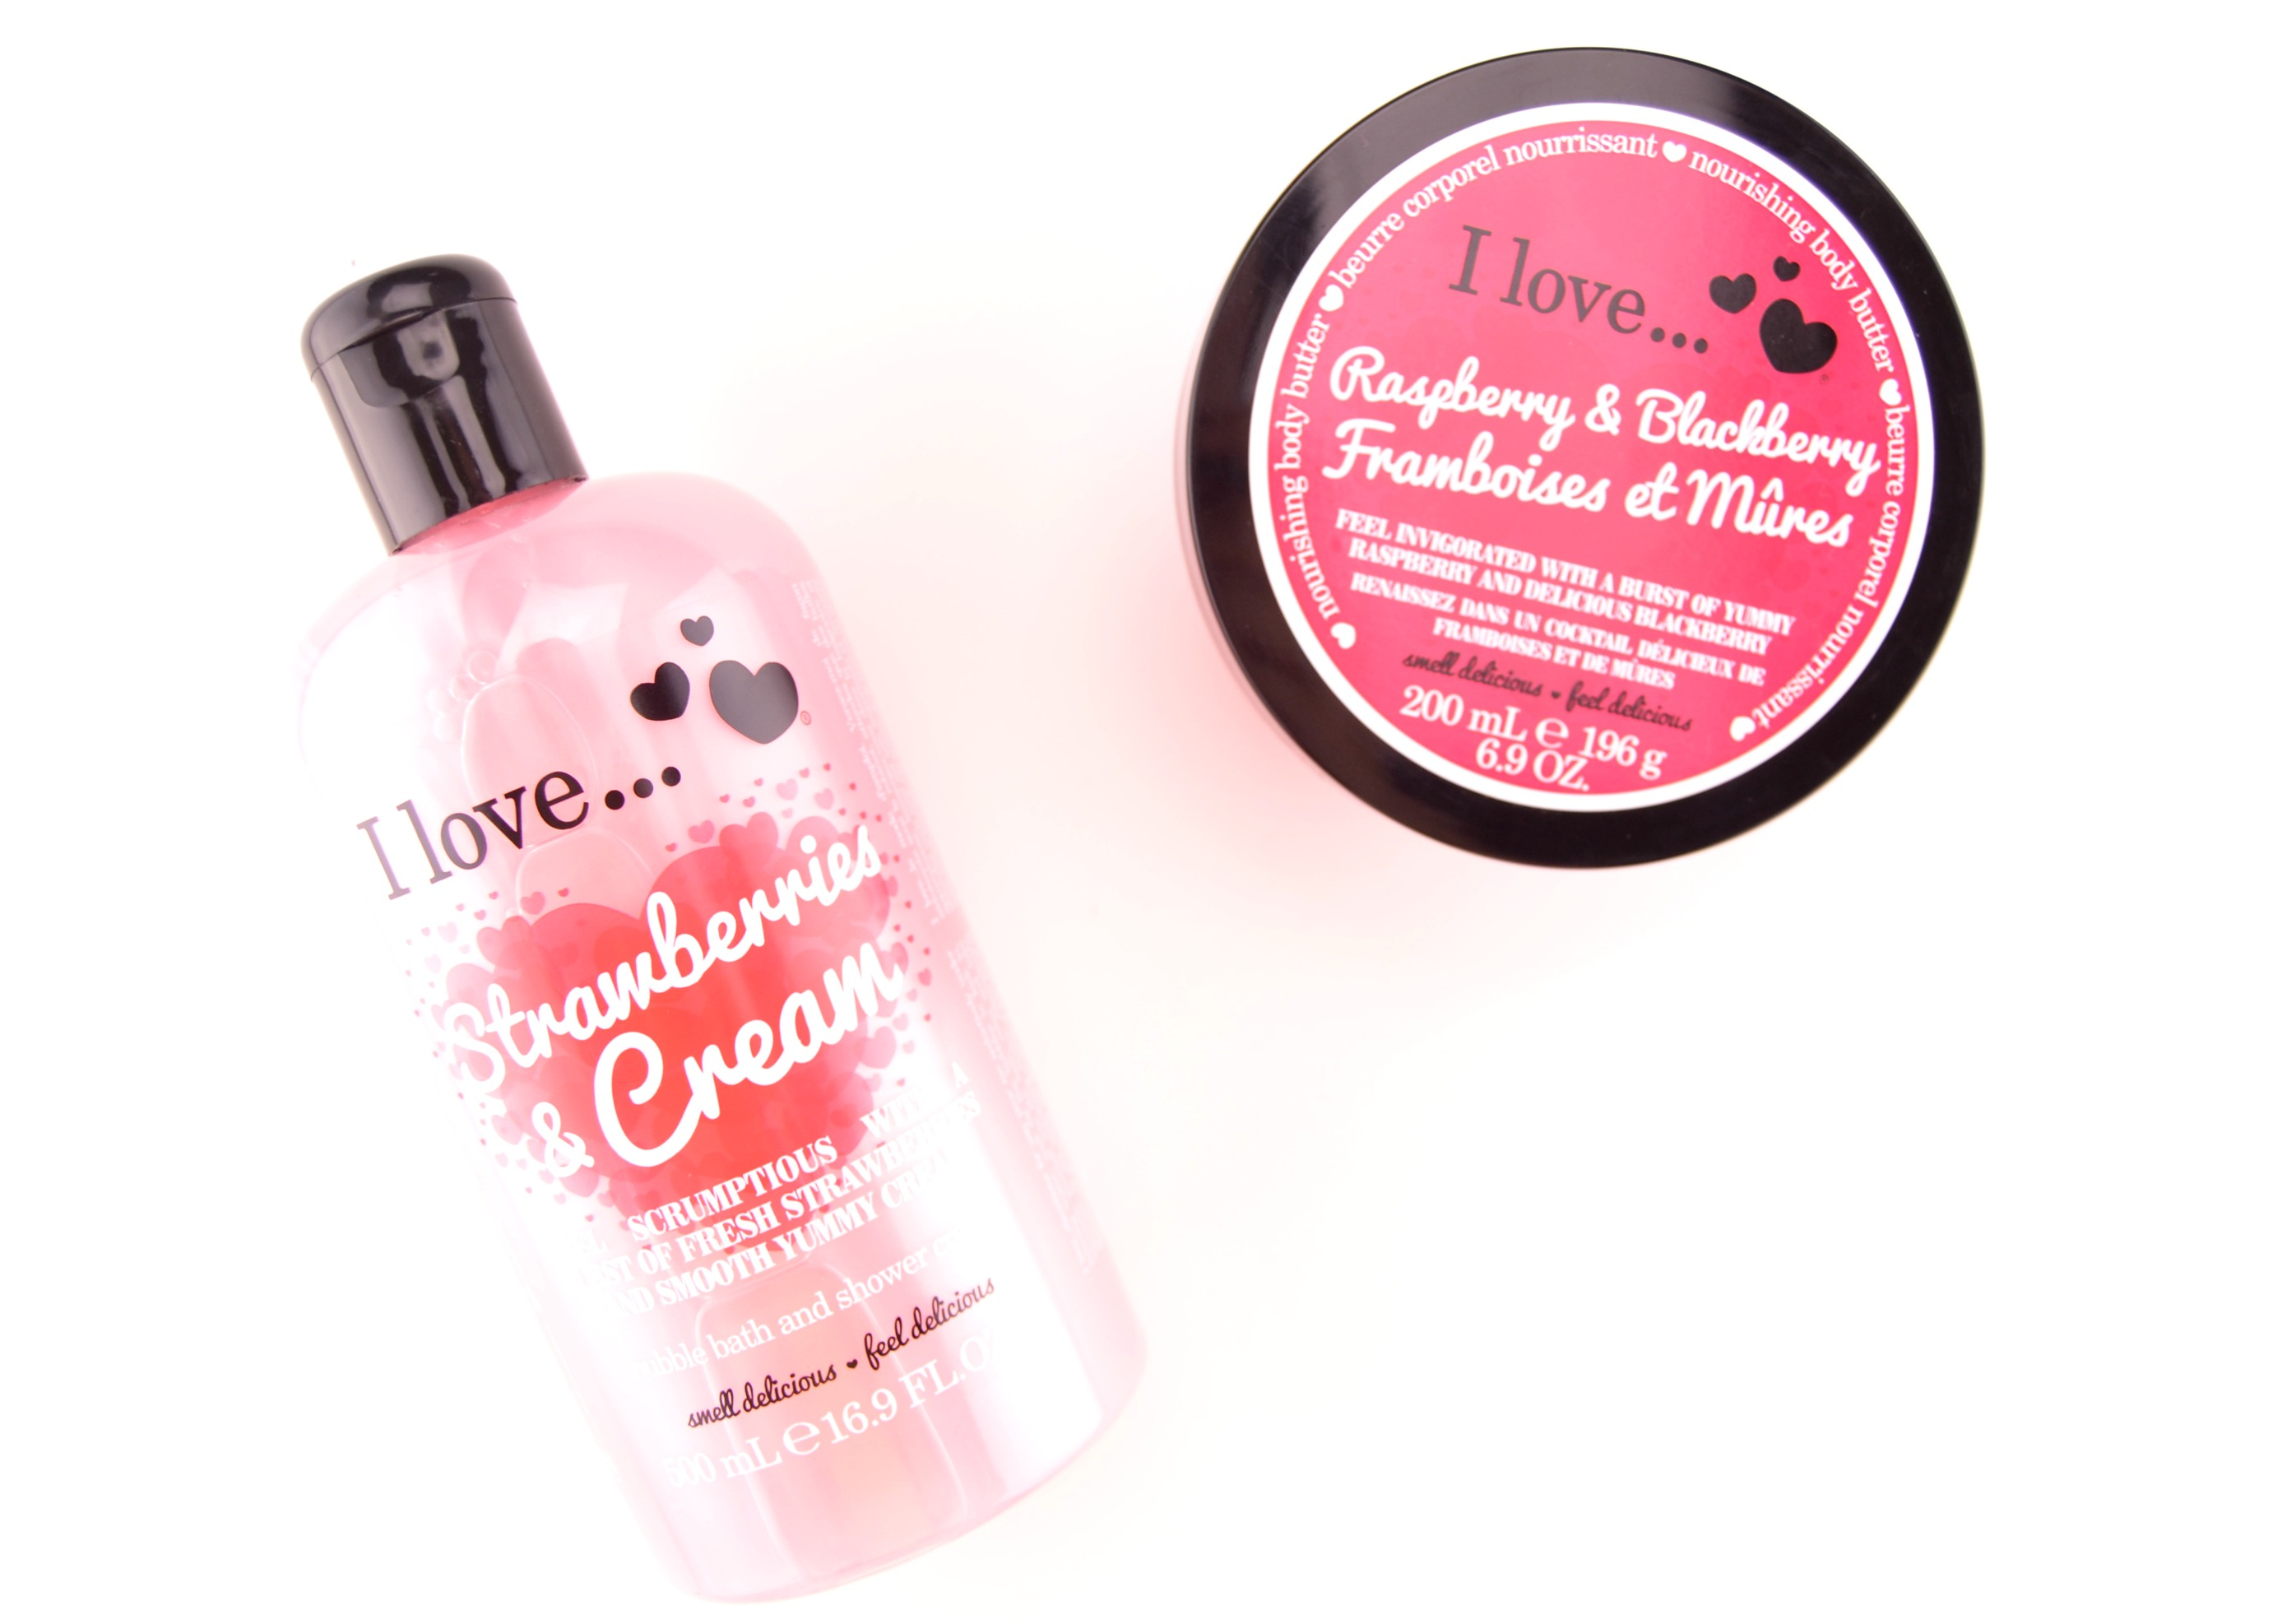 I Love Cosmetics Ltd Review